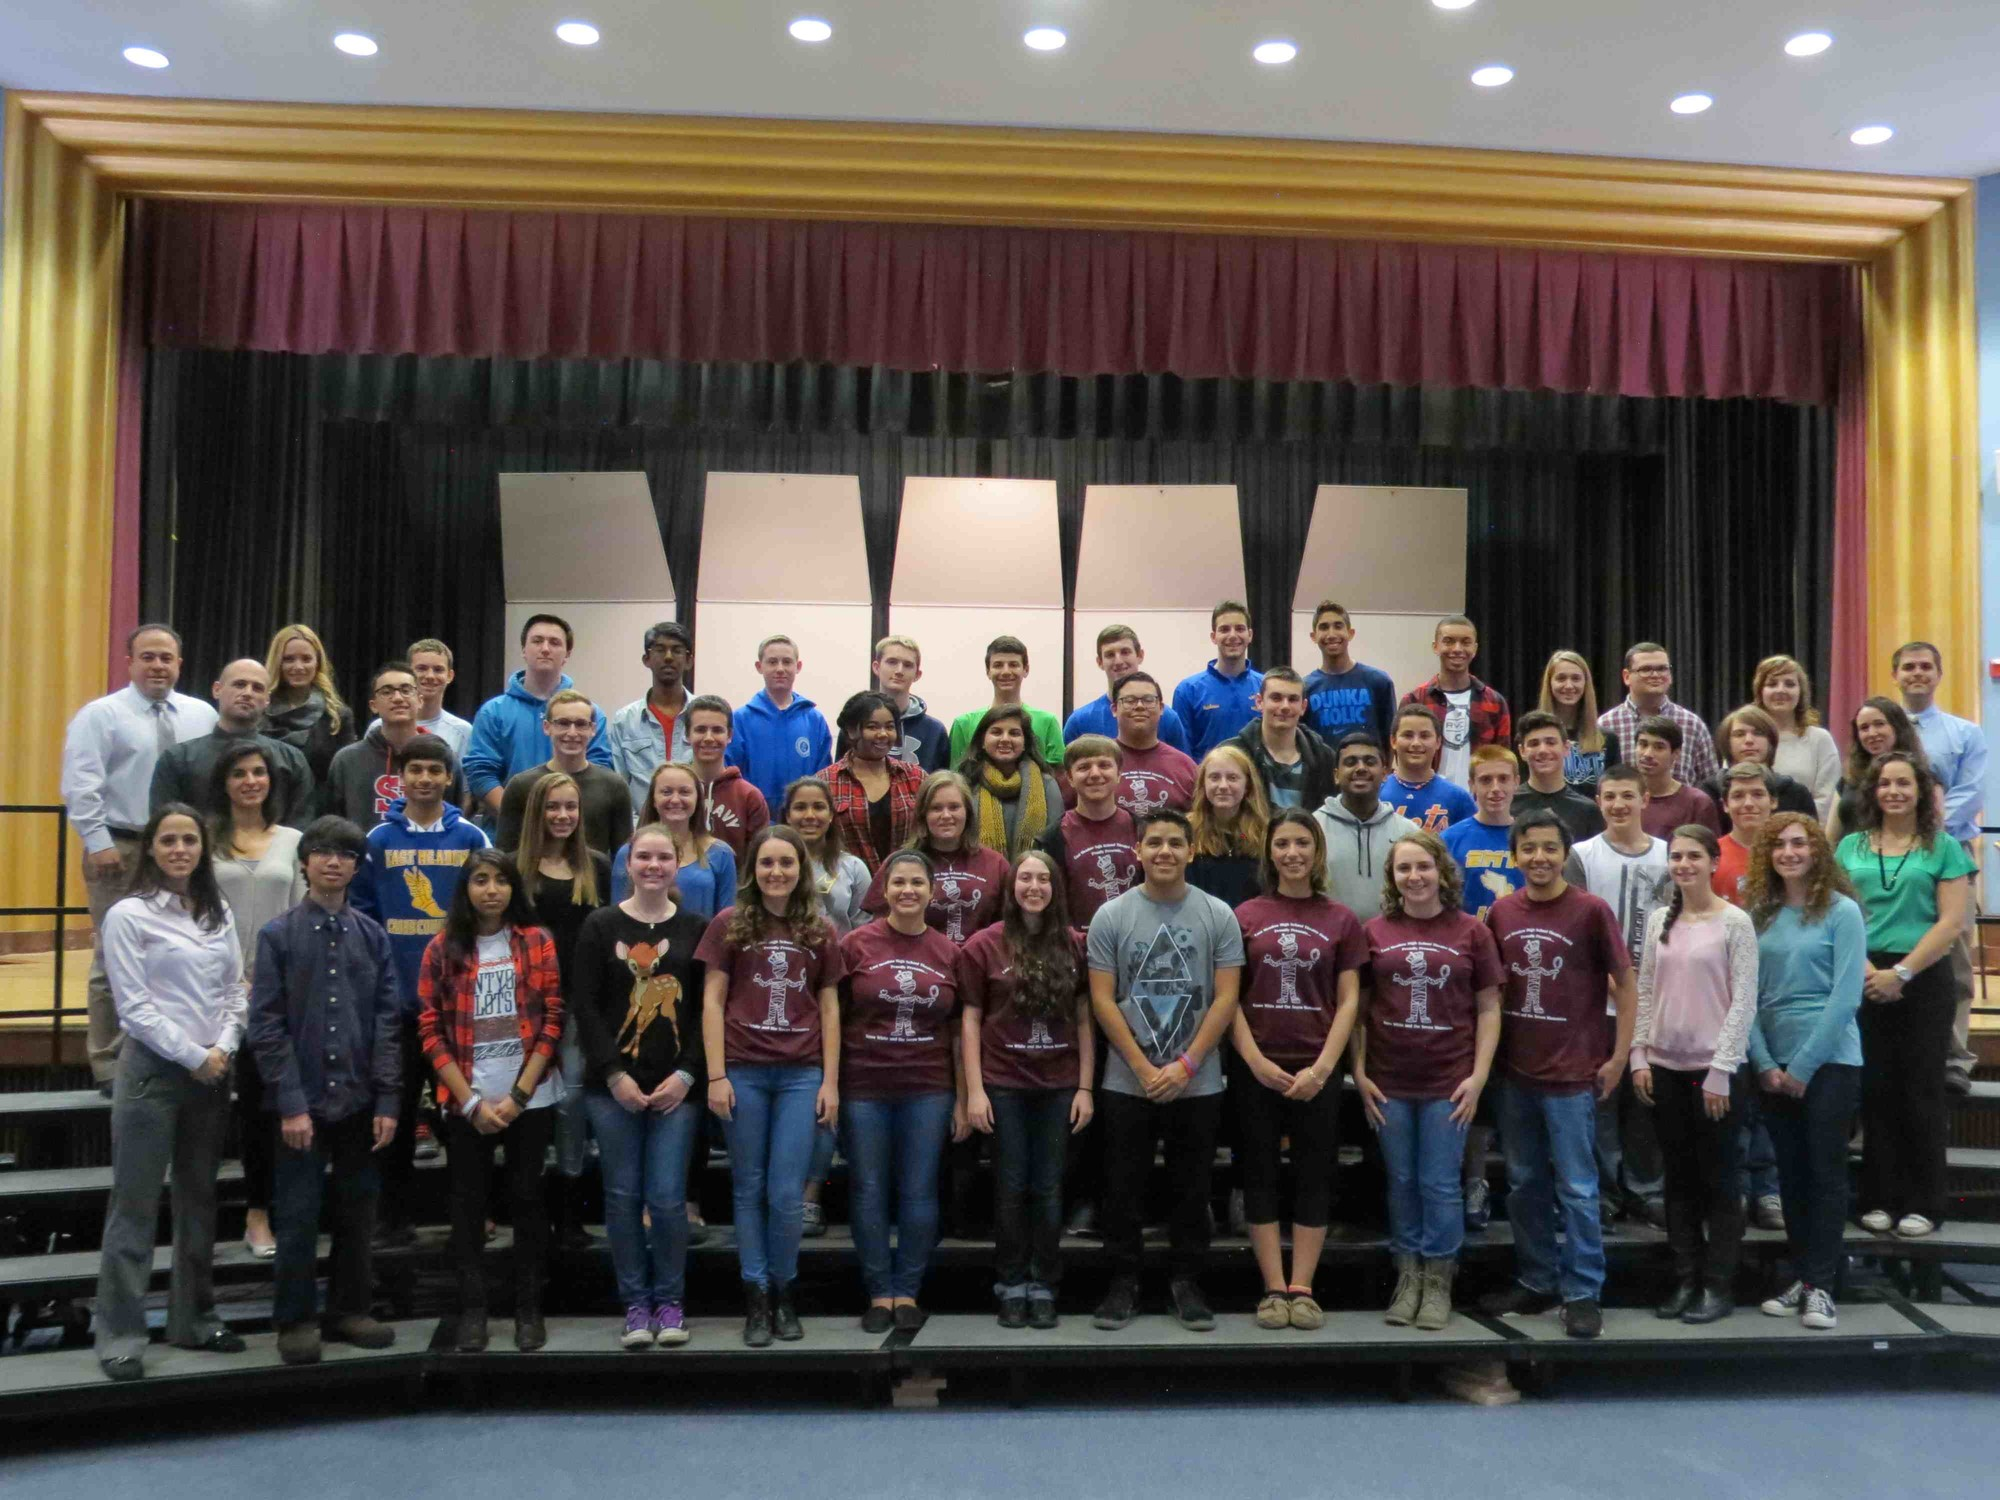 School district boasts many All-County musicians | Herald